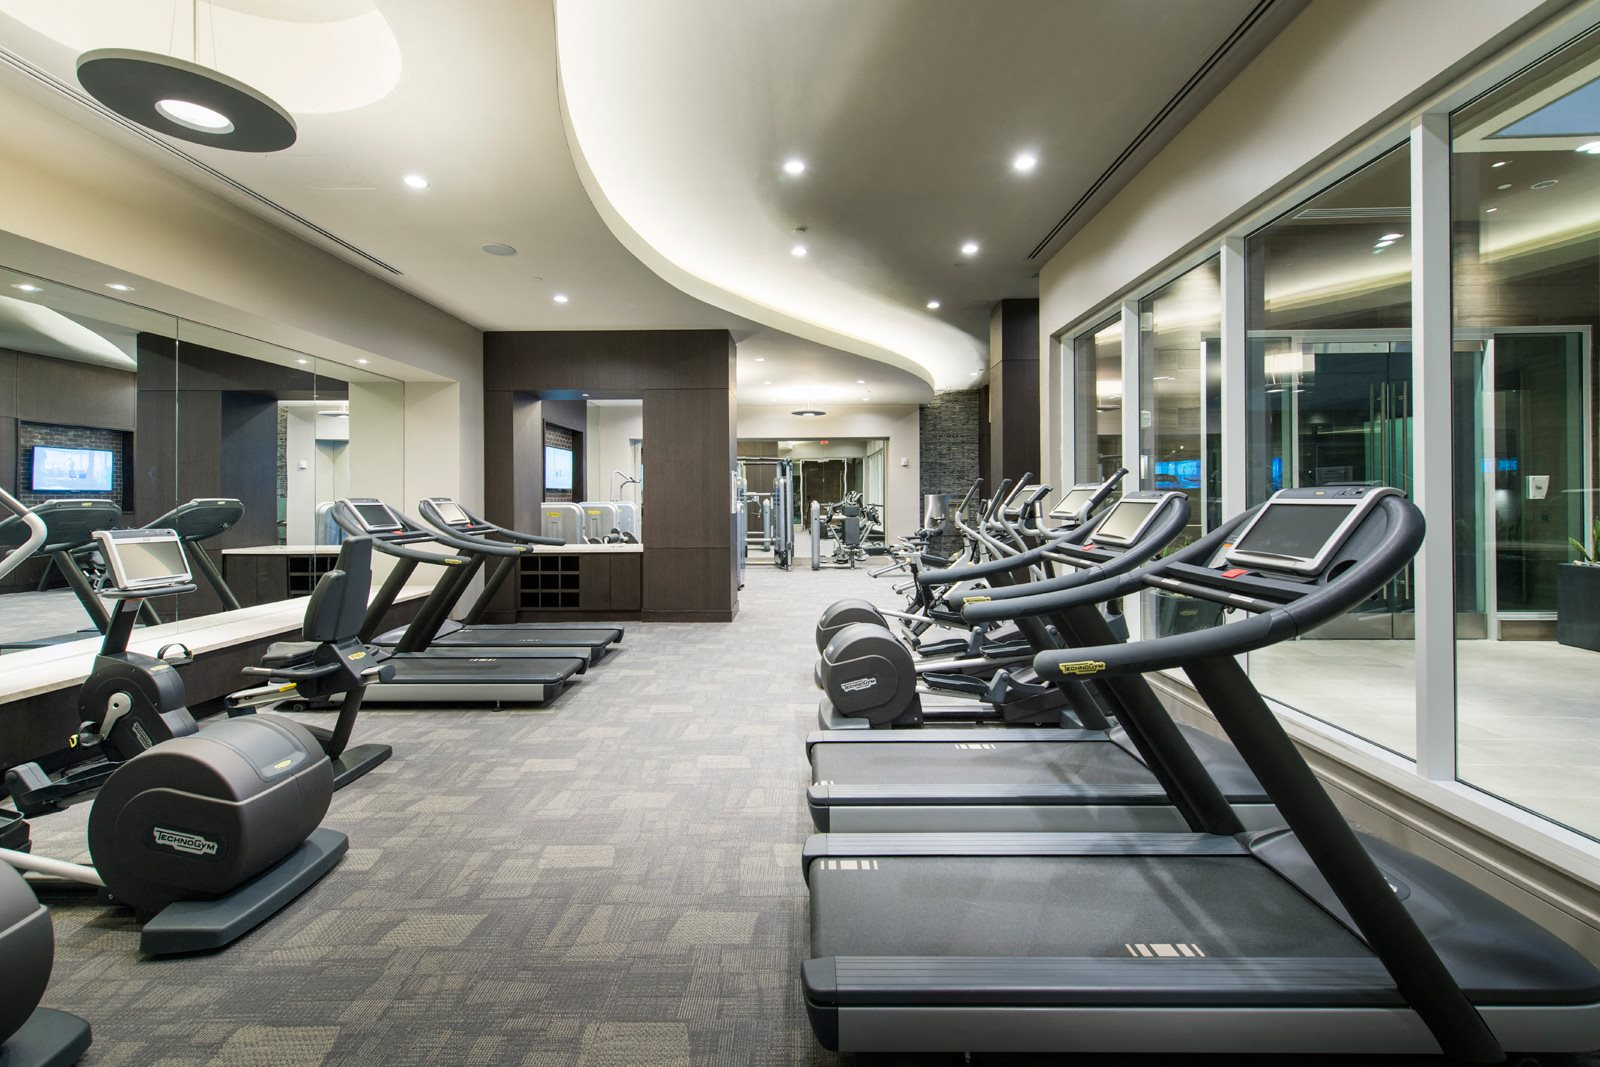 Cardio Equipment in Gym at 1000 Grand by Windsor, Los Angeles, 90015